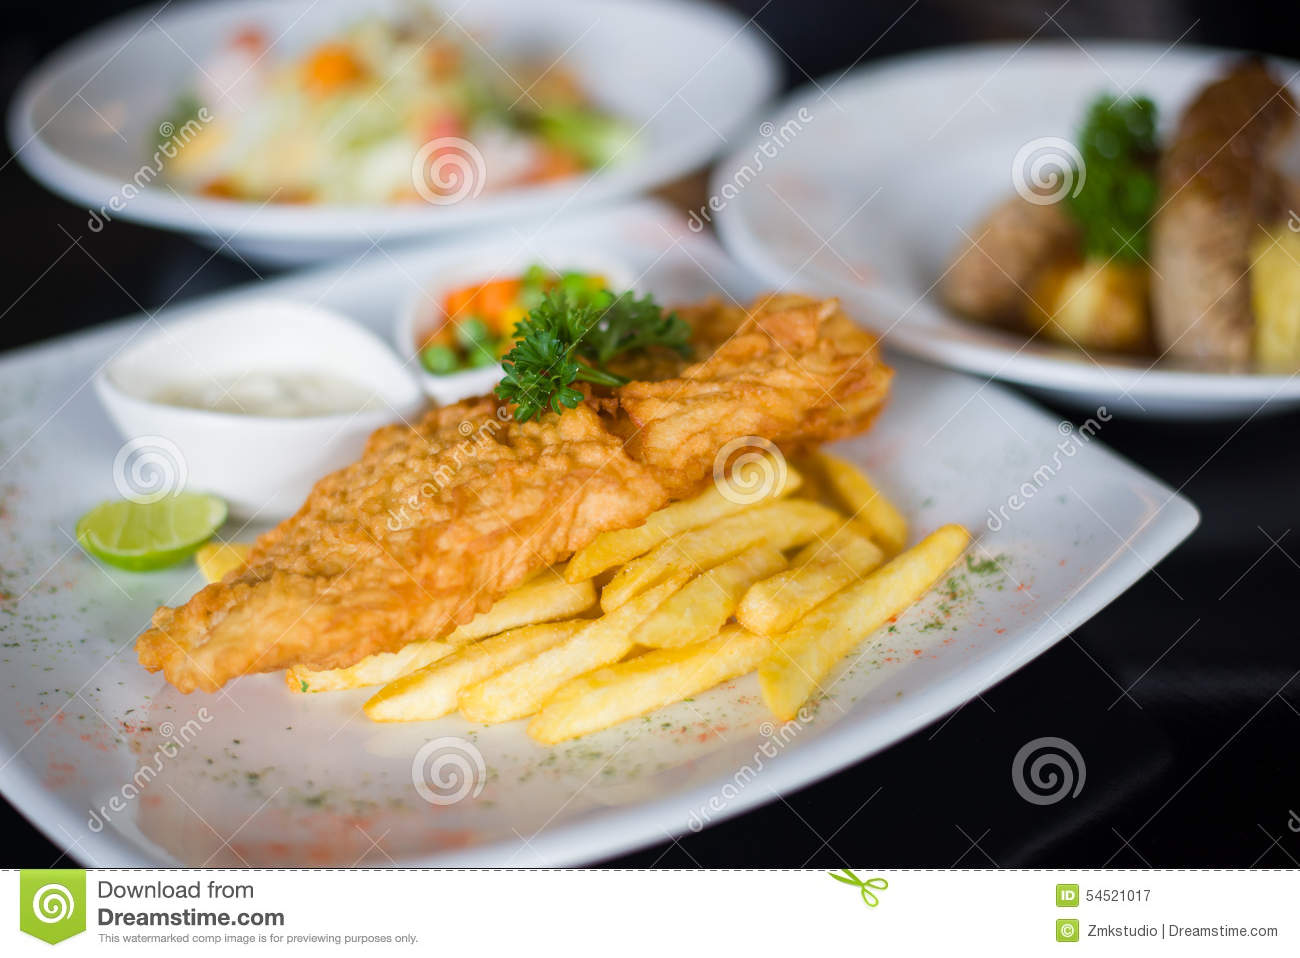 Fish And Chips Served With Tartar Sauce Stock Photo - Image: 54521017